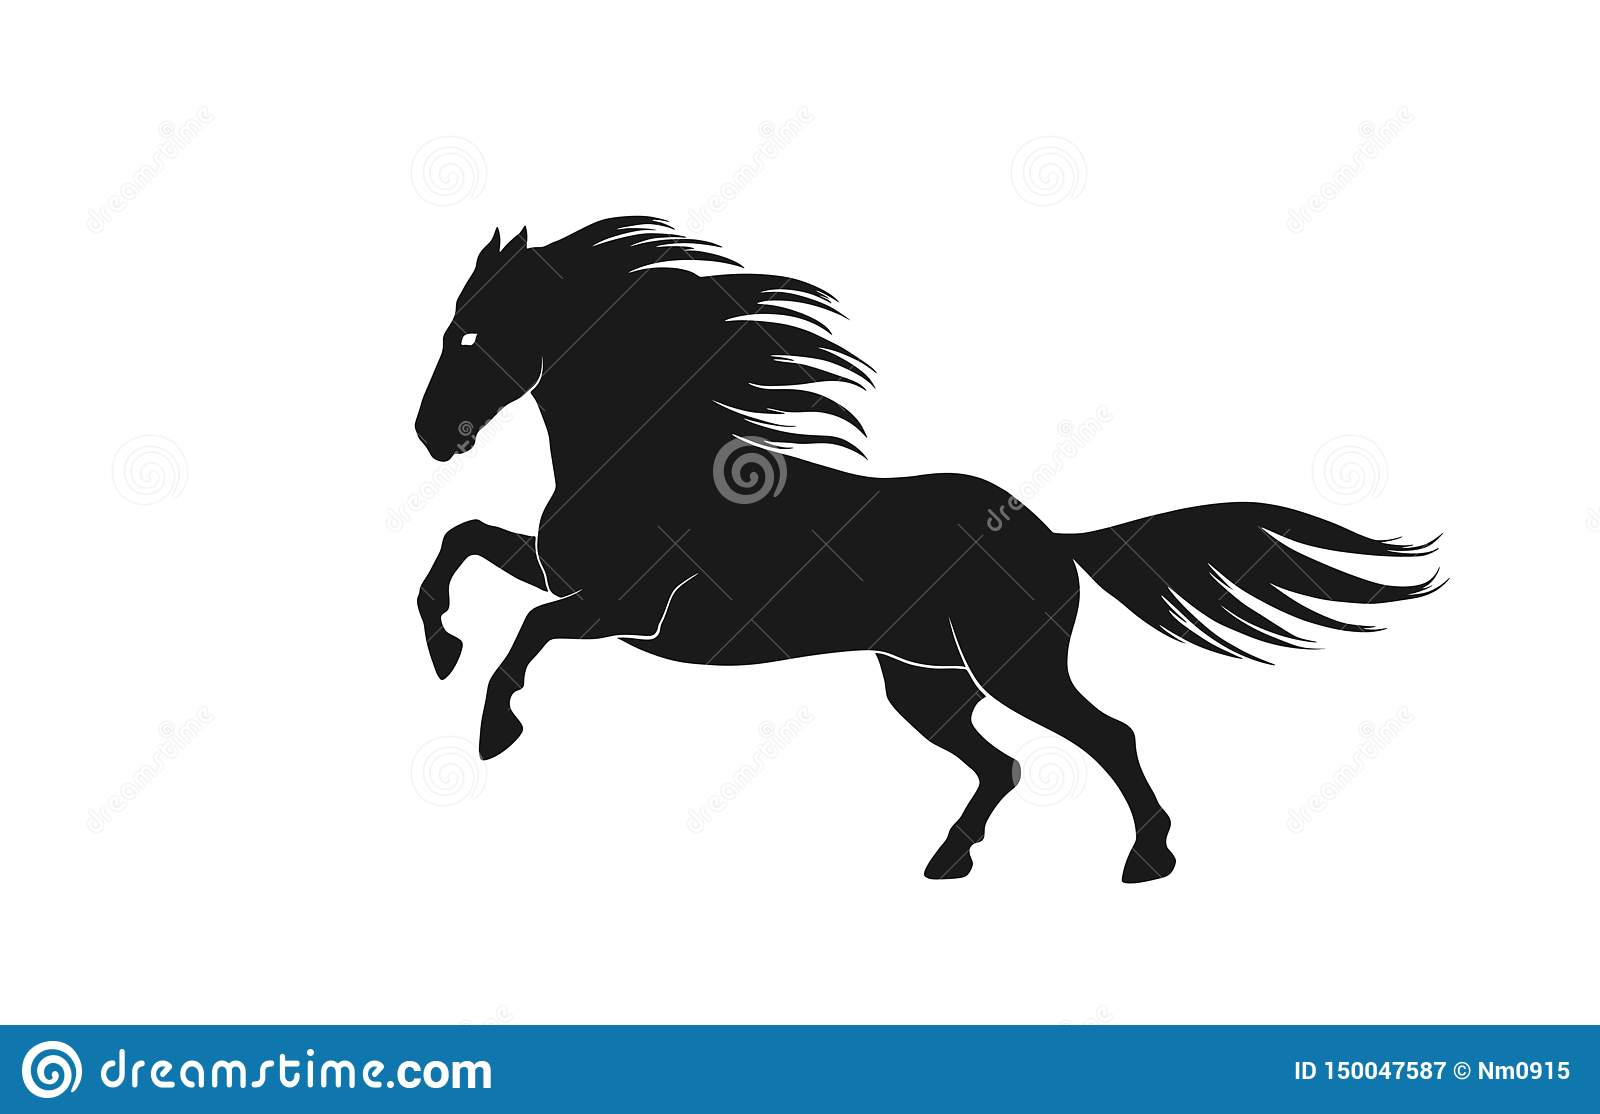 Running Horse Silhouette Side View Isolated Vector Image Of Animal Stock Vector Illustration Of Graphic Mane 150047587